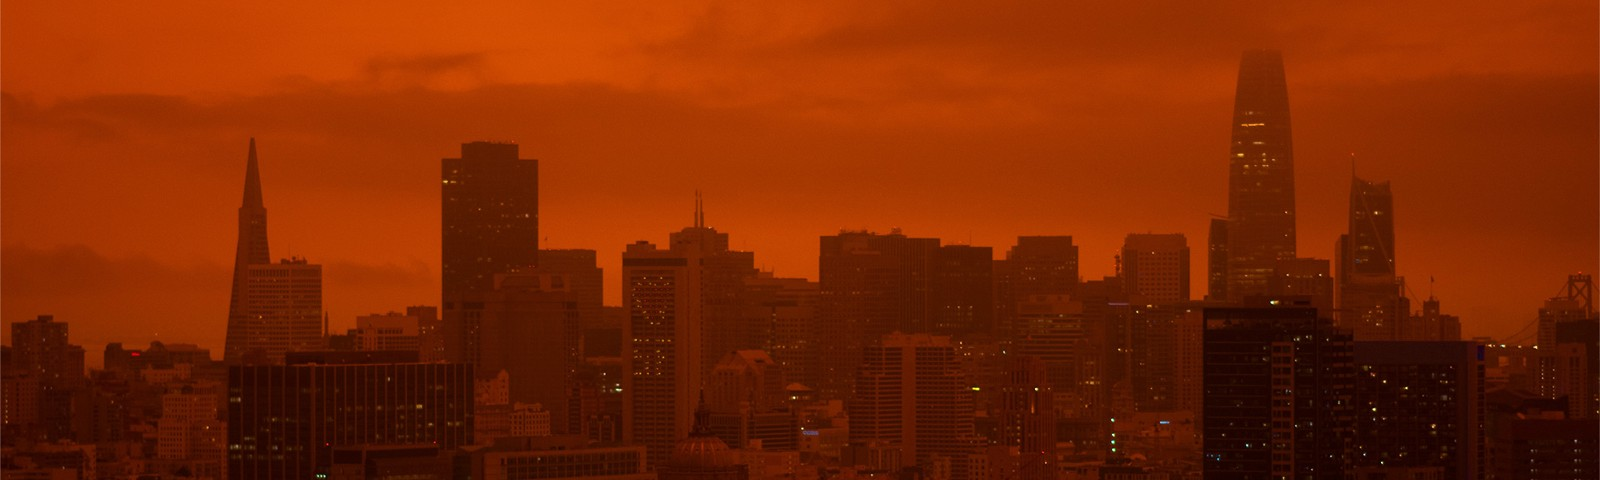 Orange skies color San Francisco from the events of September 2020.